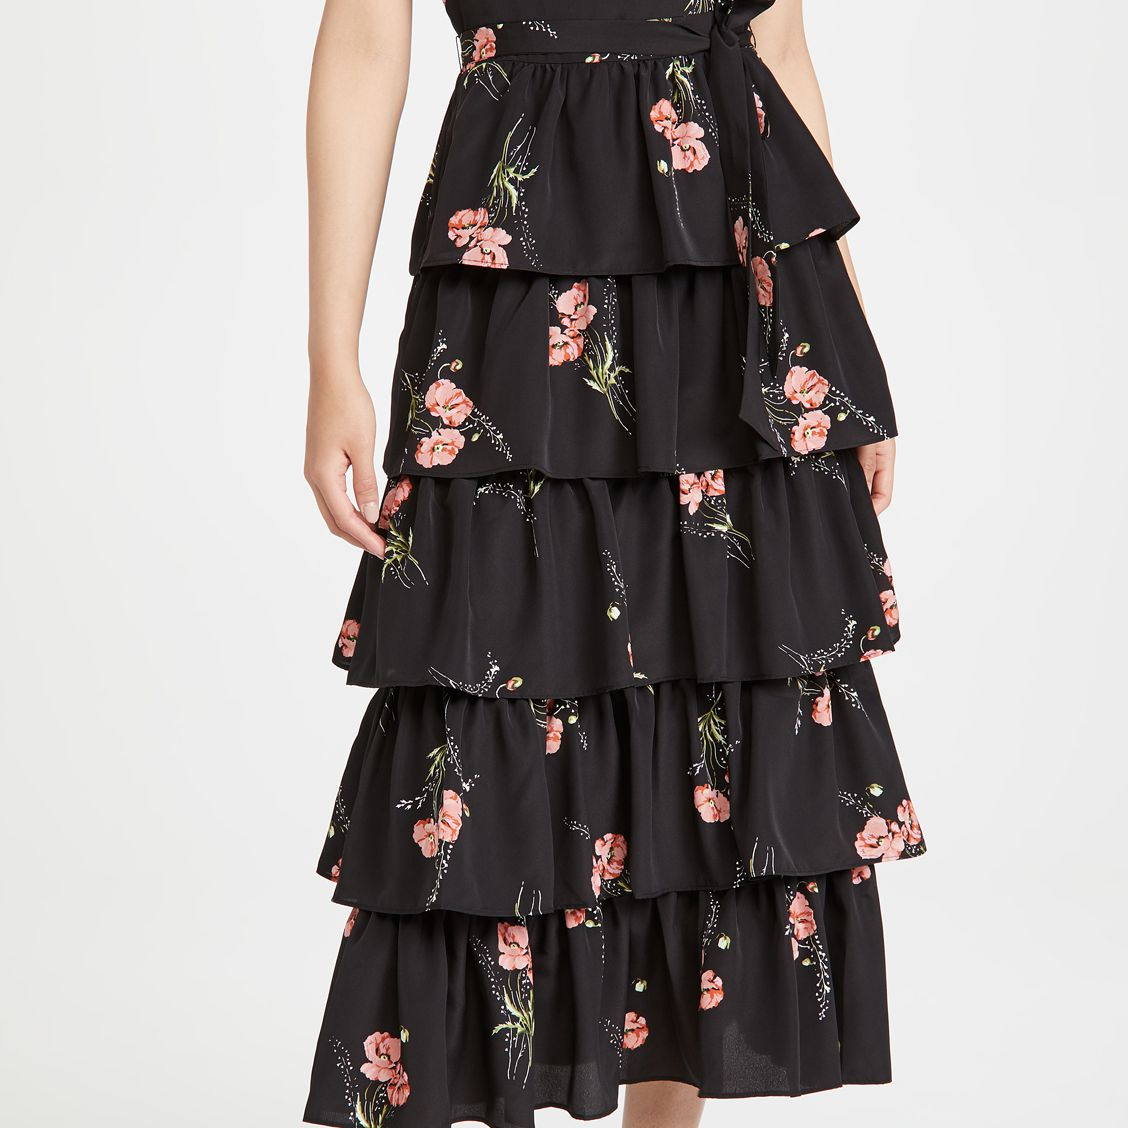 LIKELY Sharon Dress, $228, on sale $159.60